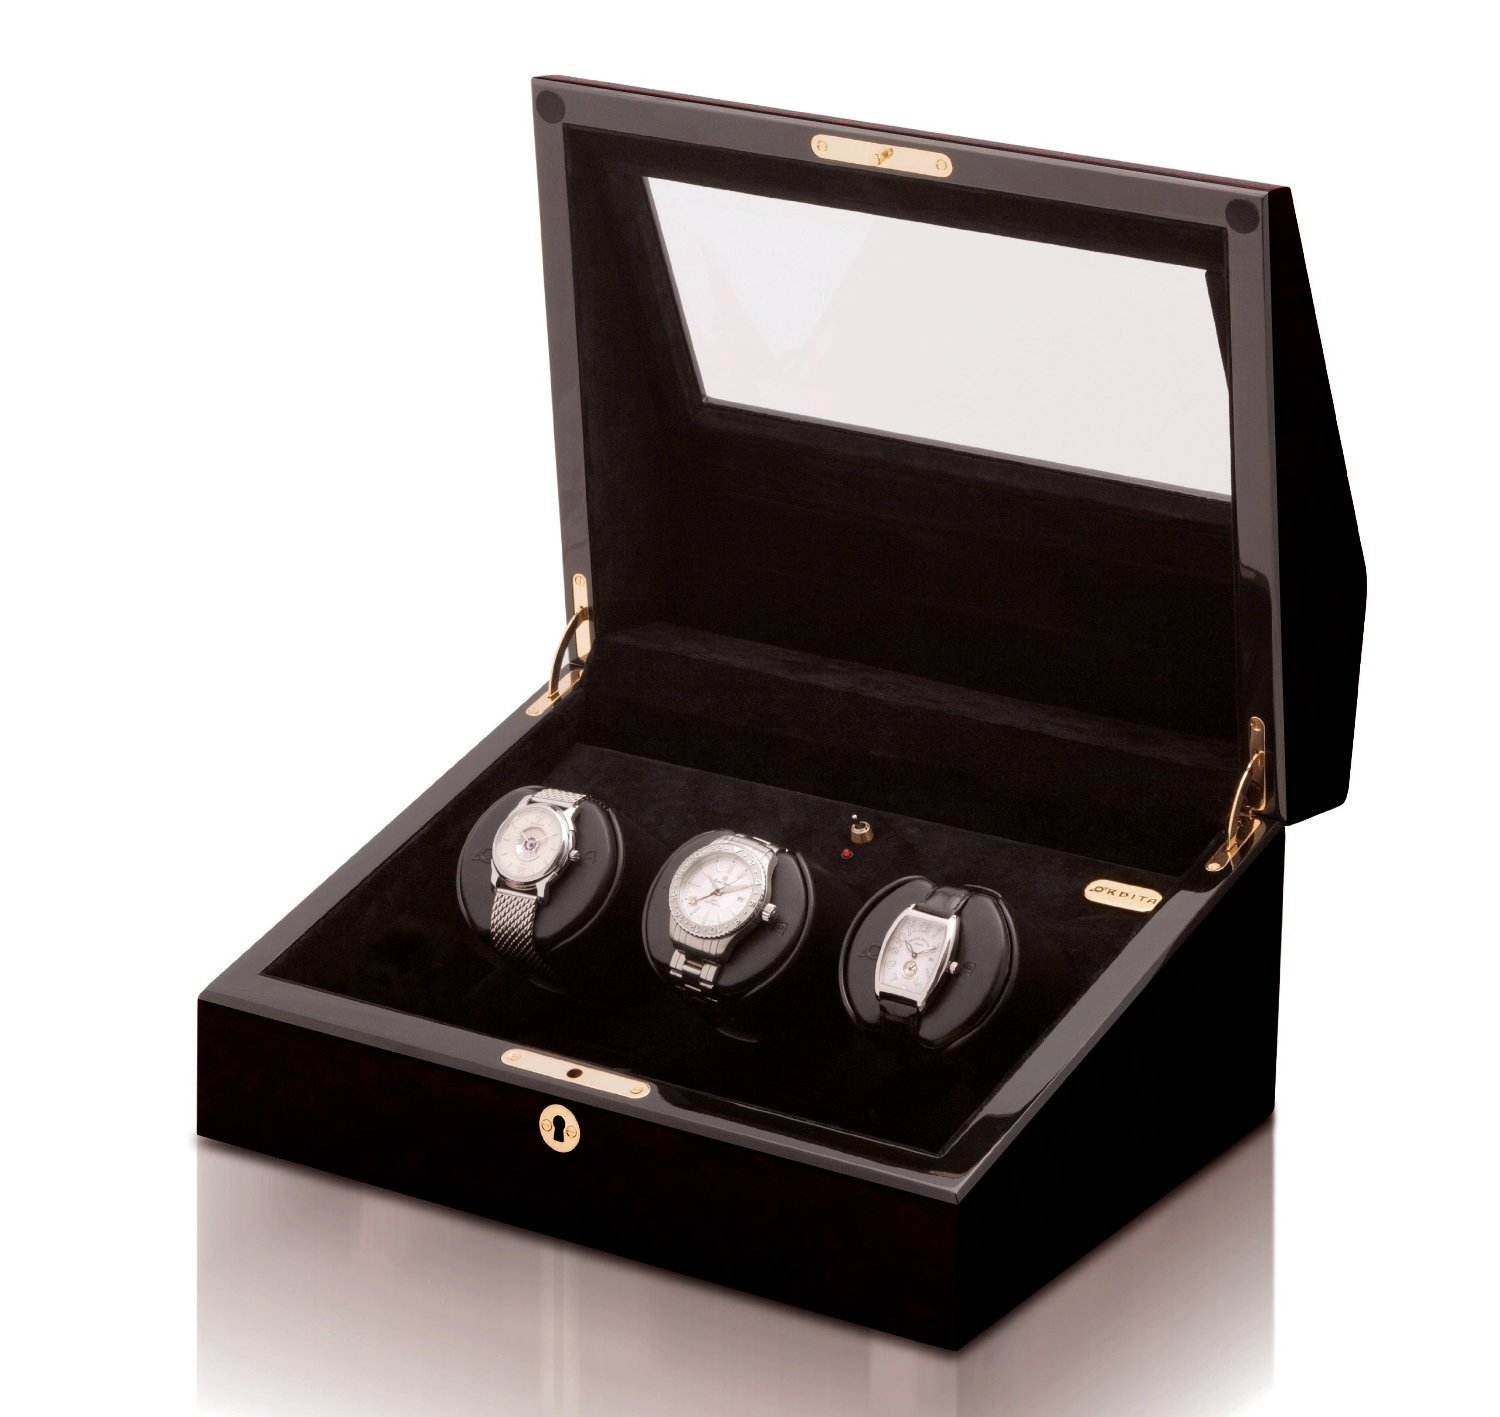 Siena 3 Programmable Watch Winder in Exotic Black Lacquer by Orbita